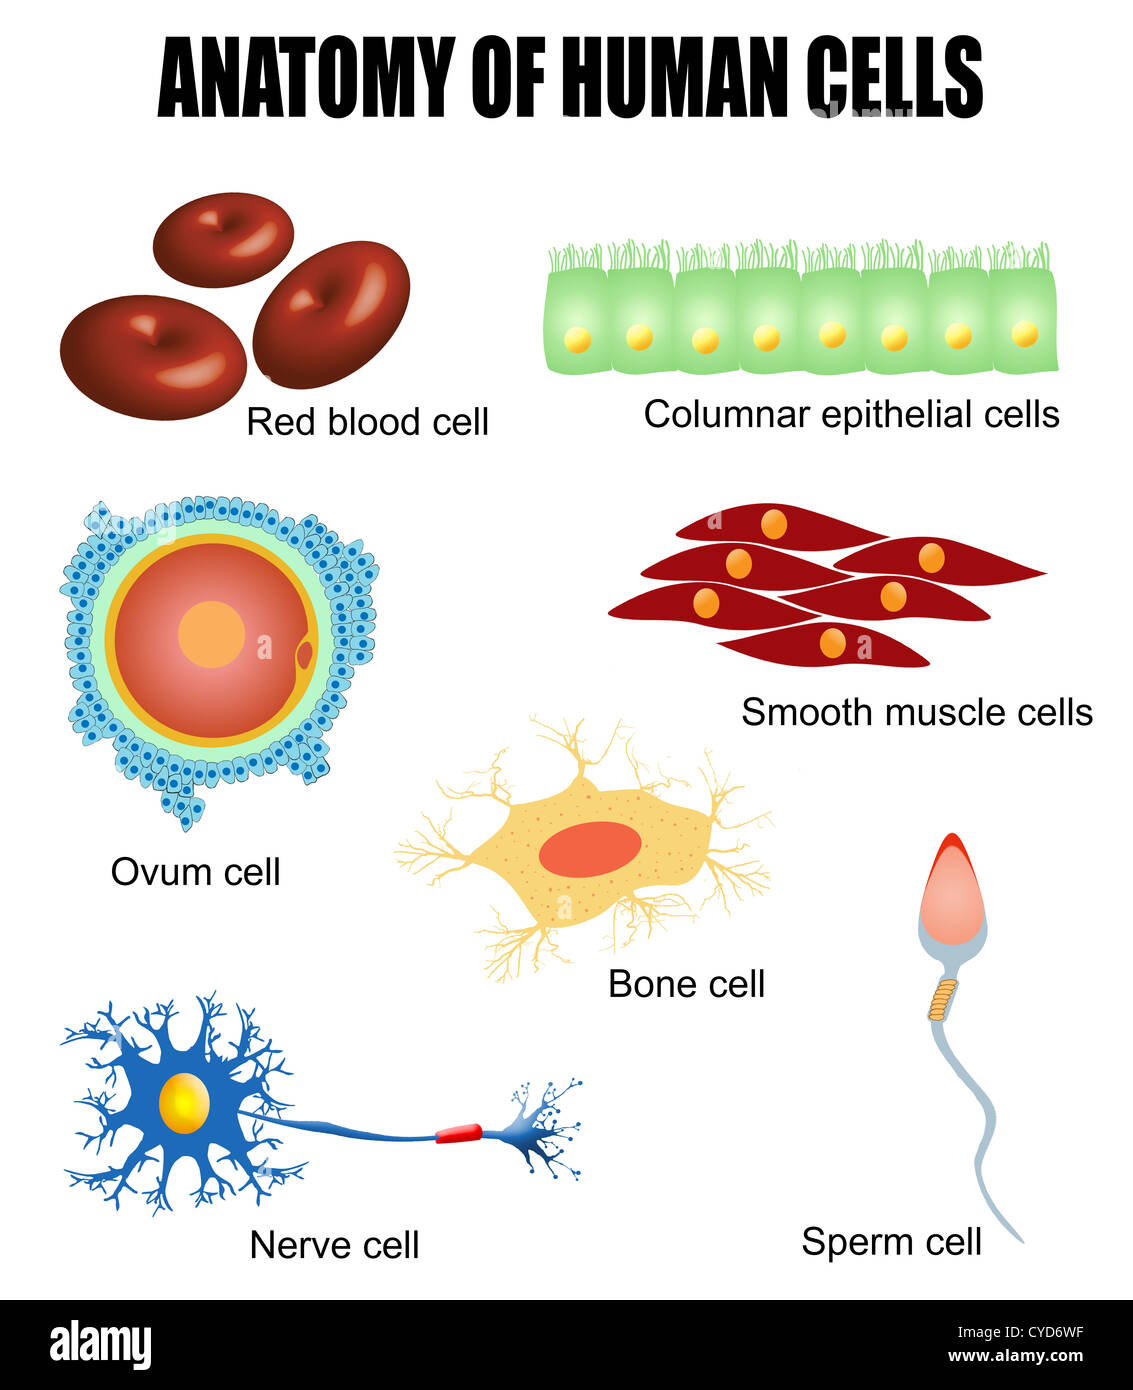 Anatomy Of Different Human Cells Poster Stock Photo 51307243 Alamy